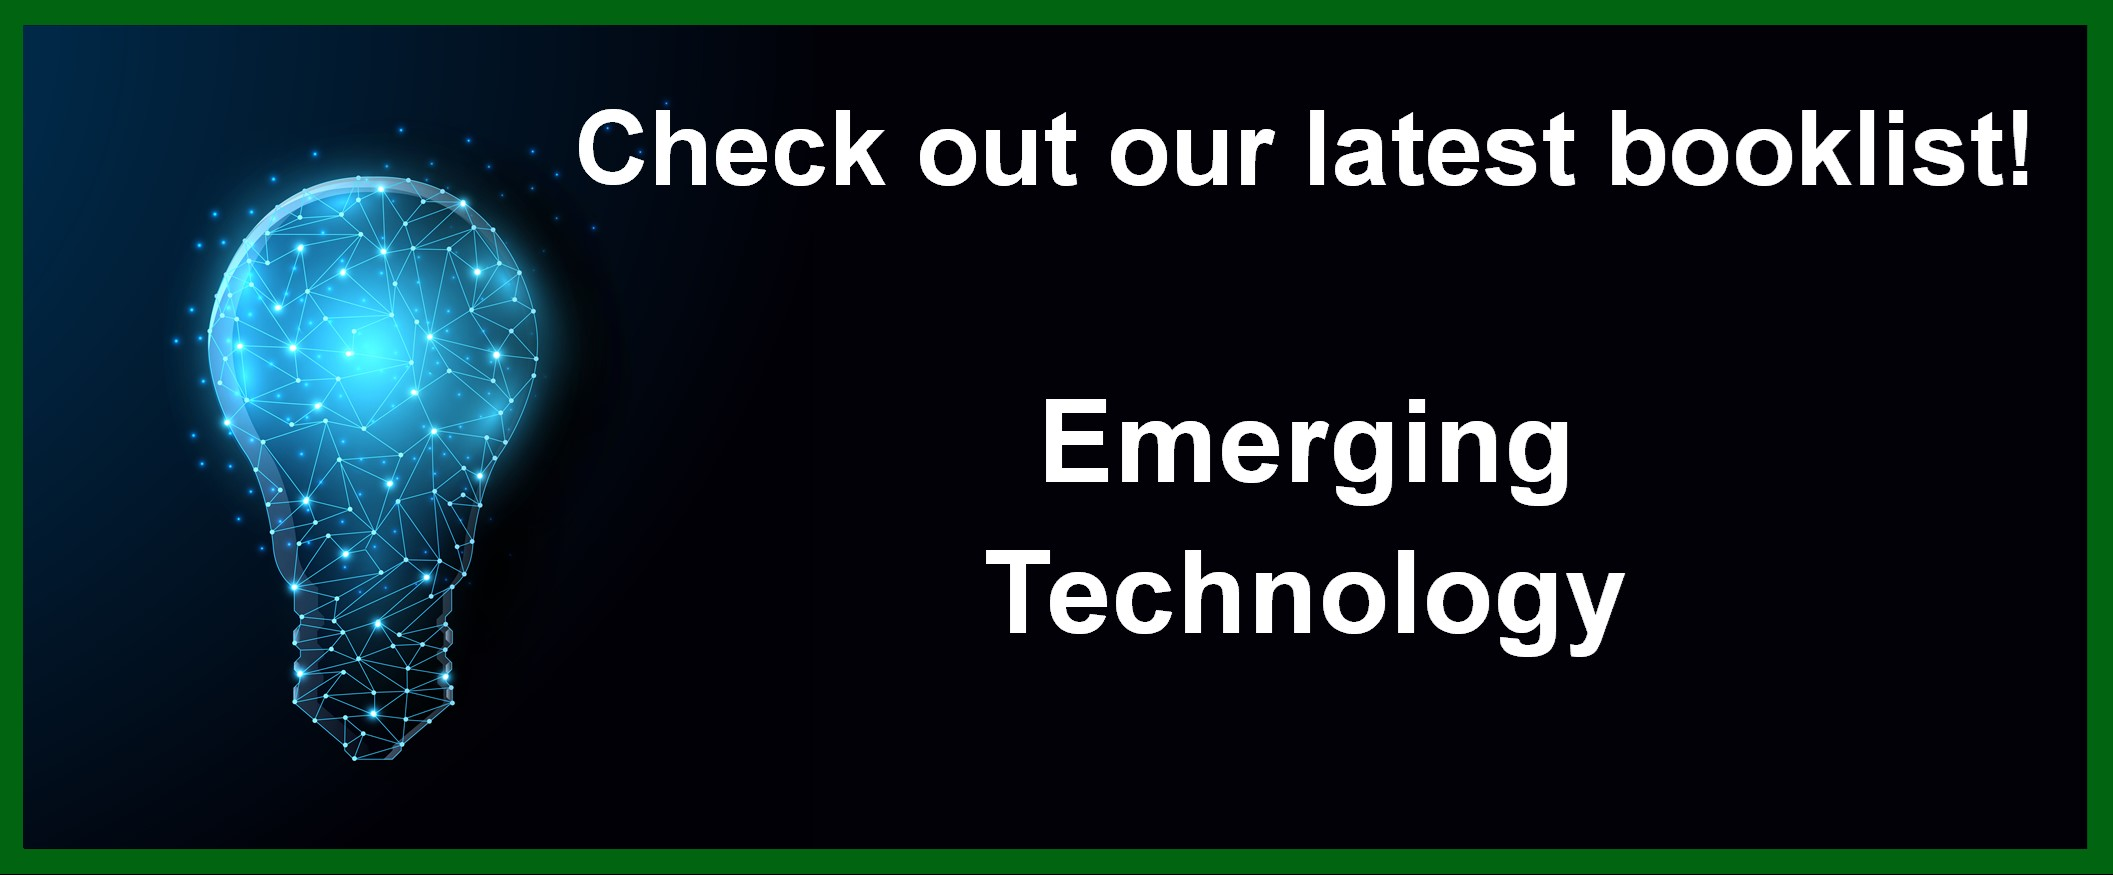 Check out our latest booklist! Emerging Technology